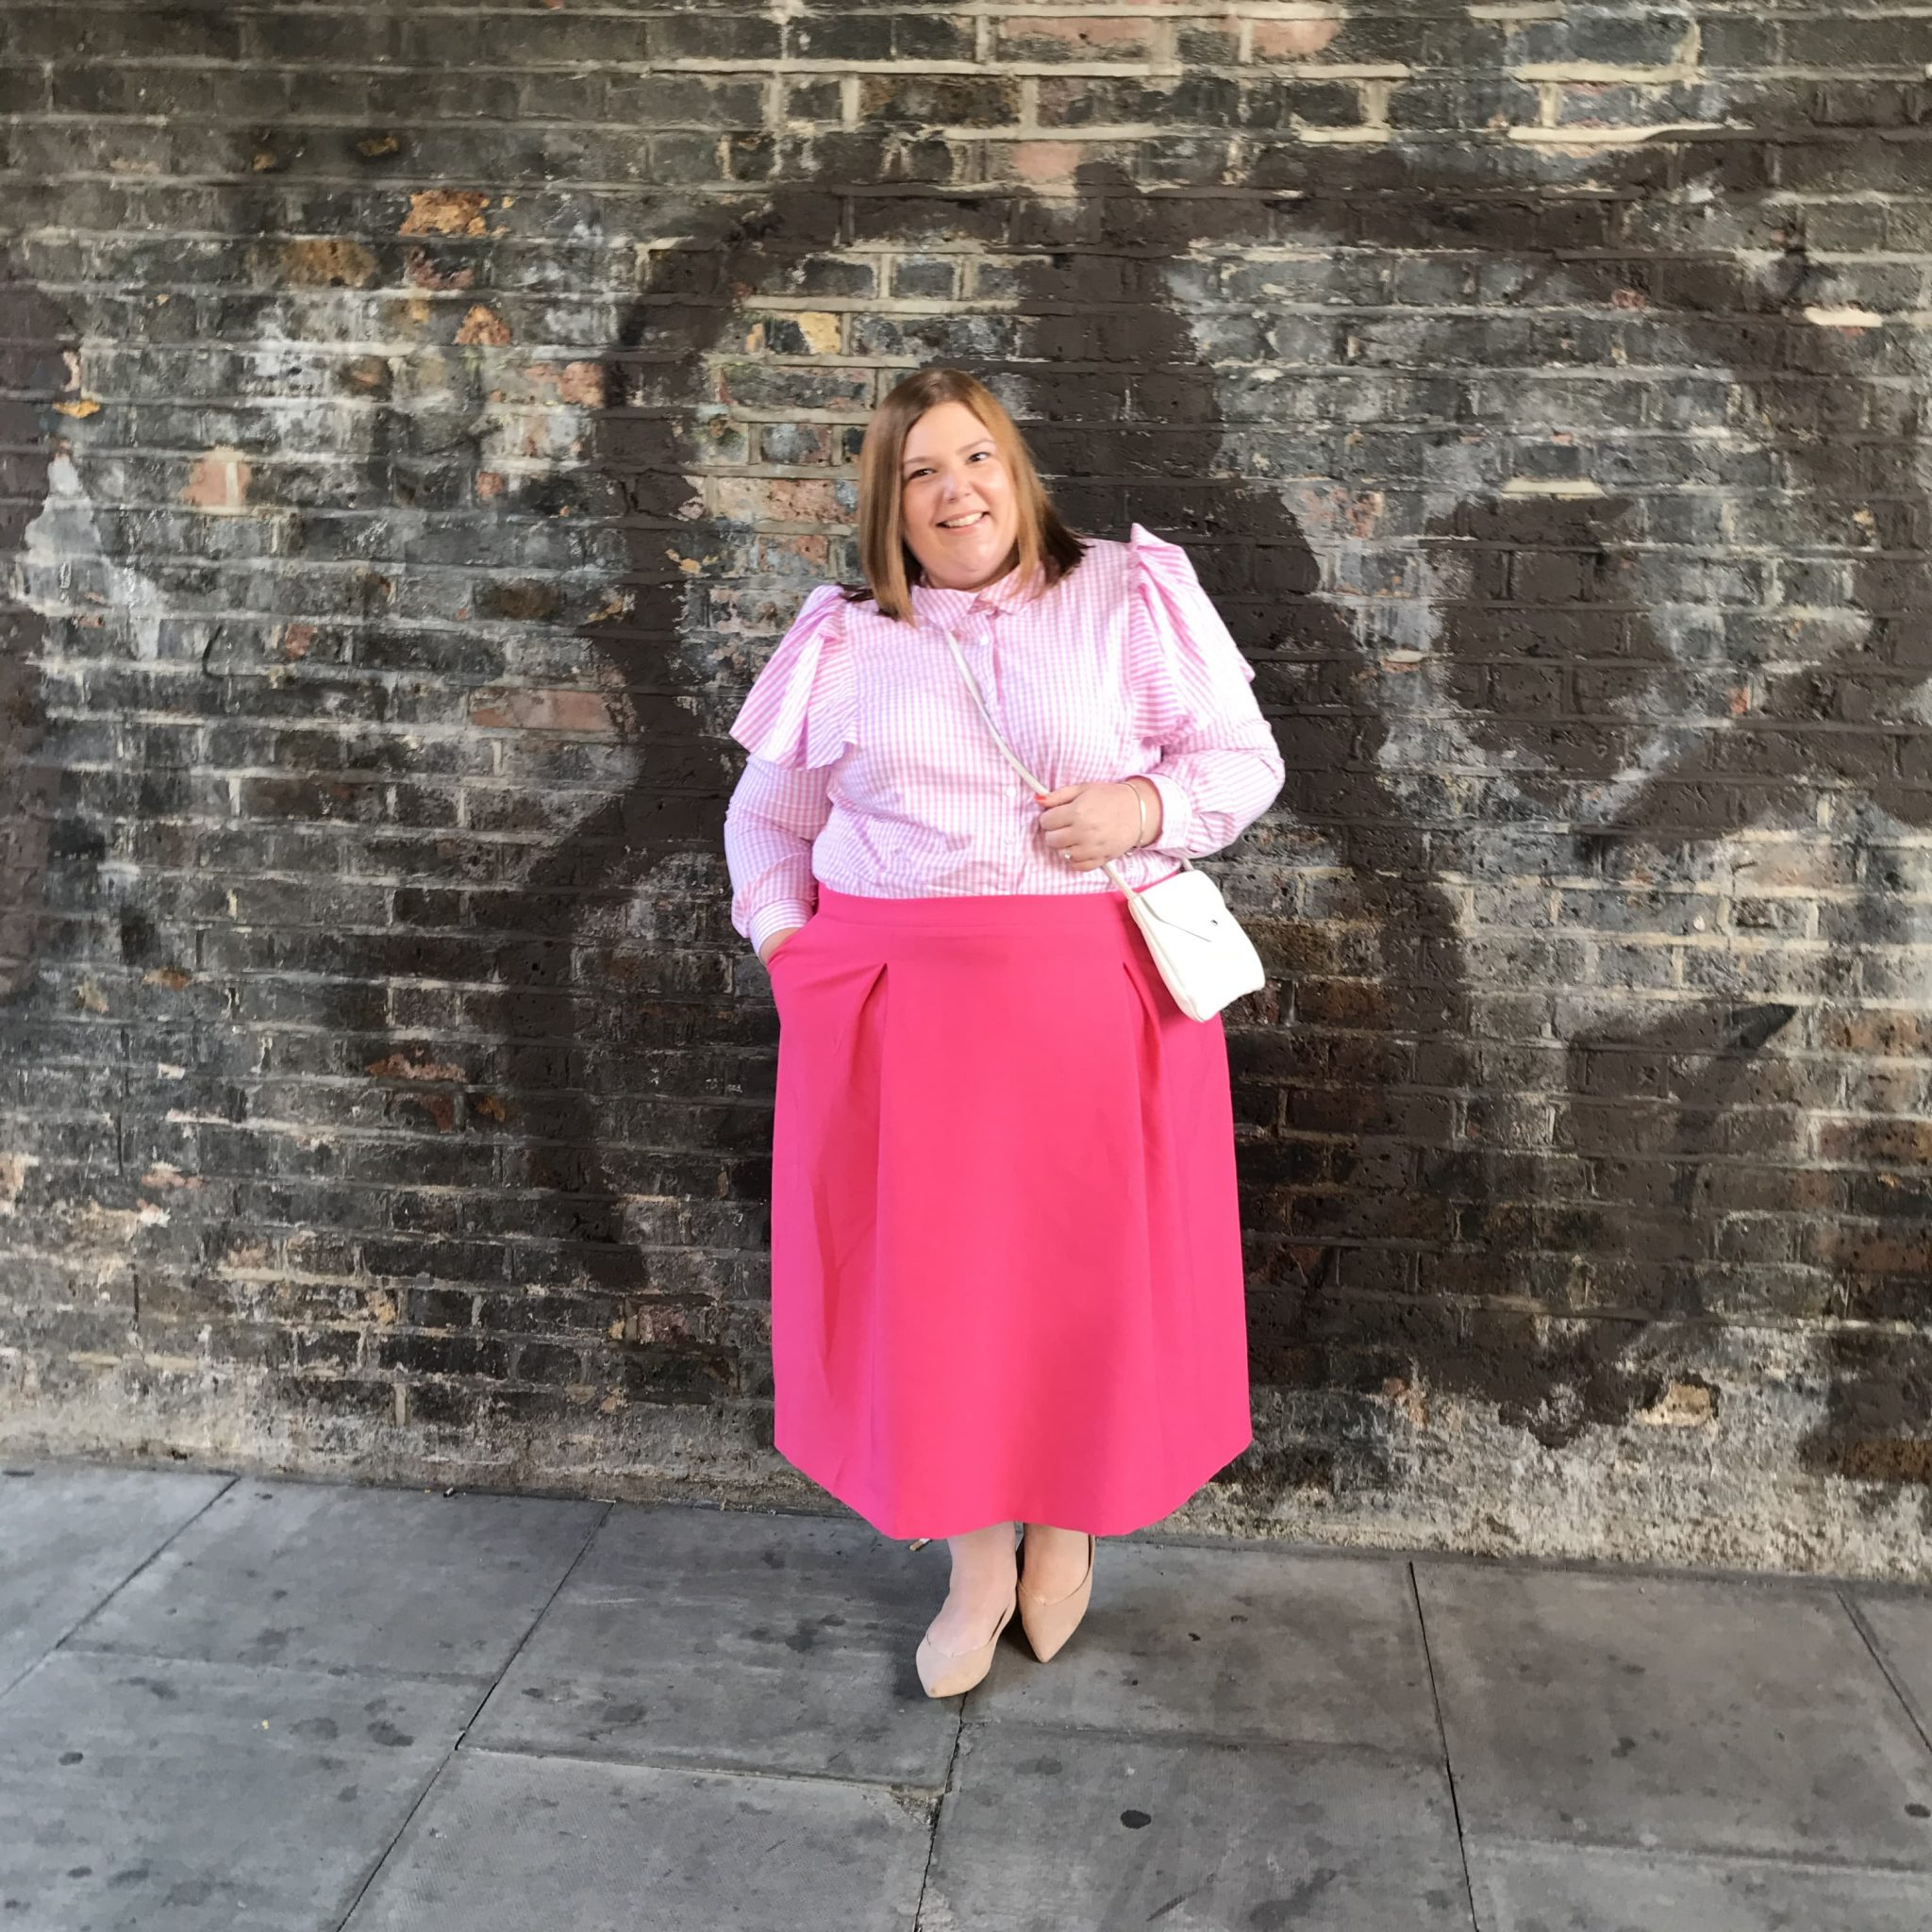 5343c7bd60a The Arched Eyebrow X Navabi Collection - Pretty Big Butterflies